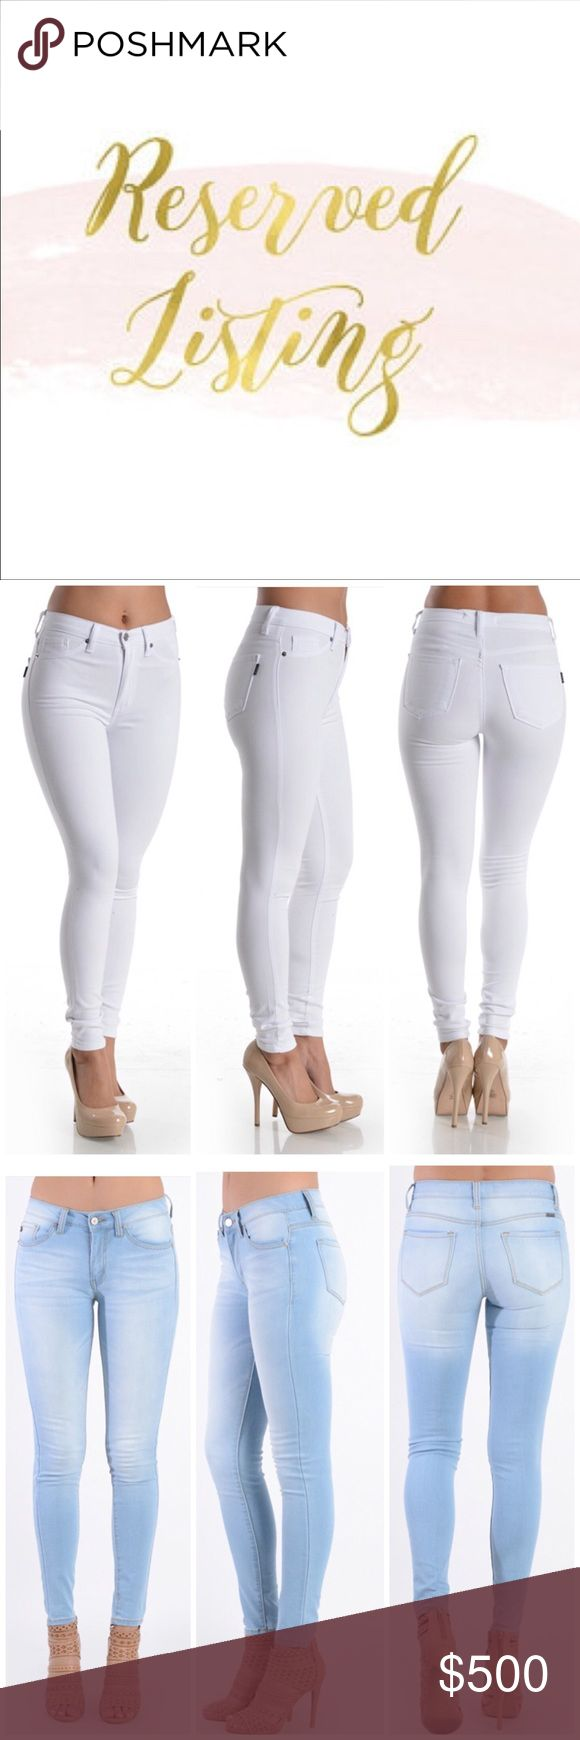 Reserved for White Skinny Jeans size 28 and light blue skinny jeans size 28... $42 each + 10% discount = $75 Kan Can USA Jeans Skinny